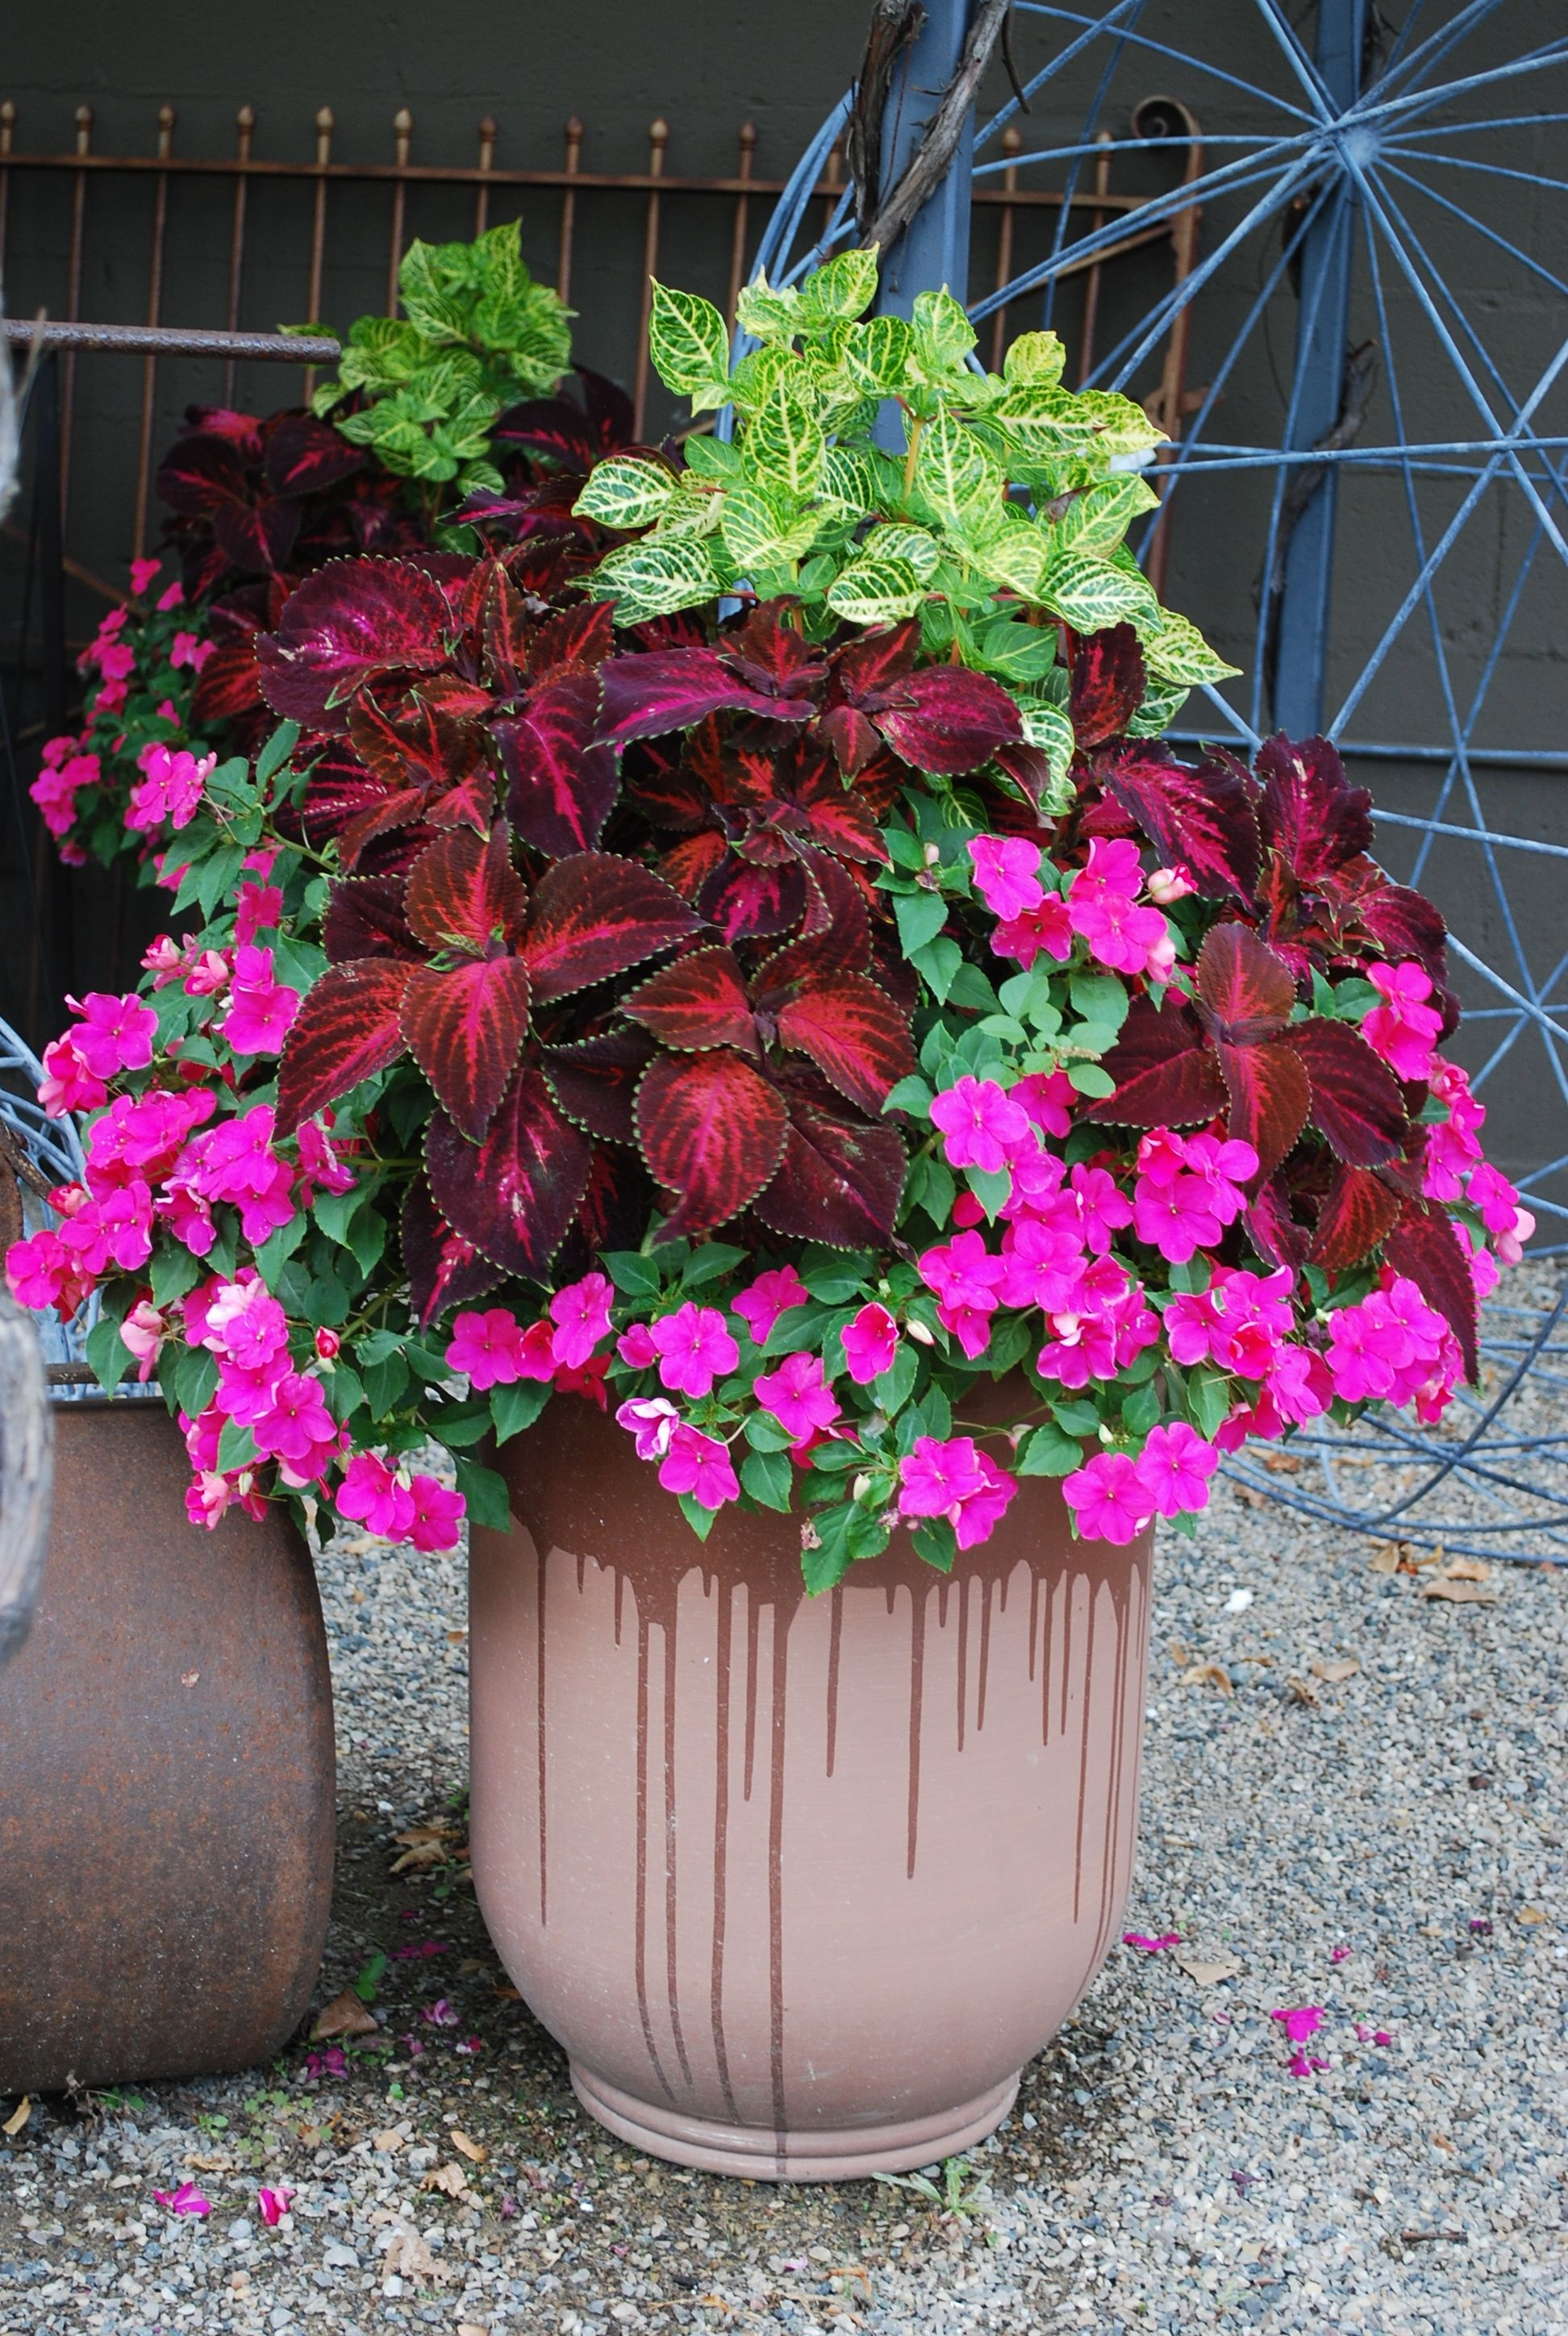 Potted Plants And The Necessary Spring Care: Kingwood Red Coleus And Lipstick Impatiens